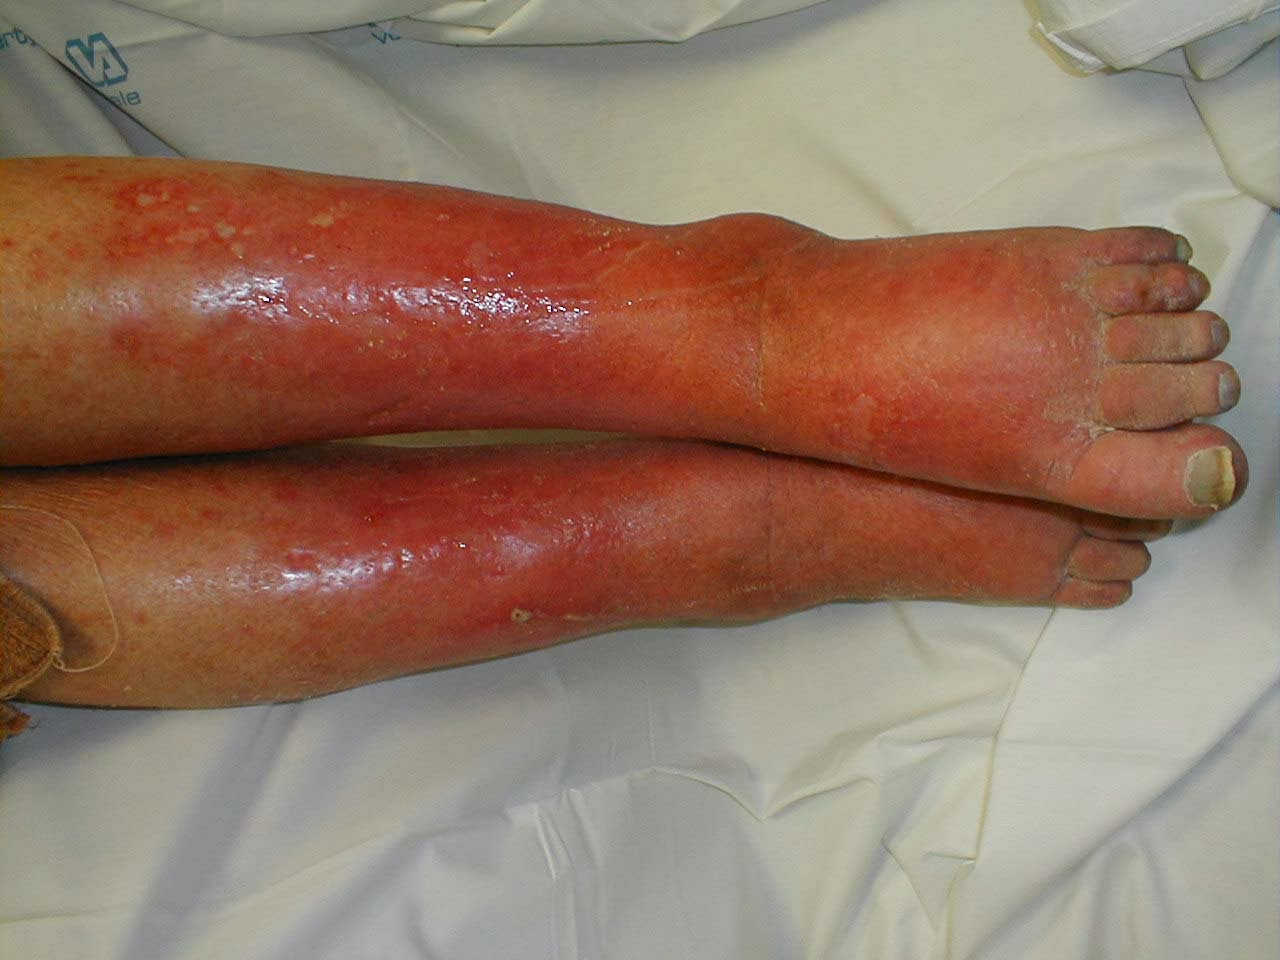 Cellulitis : Causes, Symptoms, Treatments & Pictures